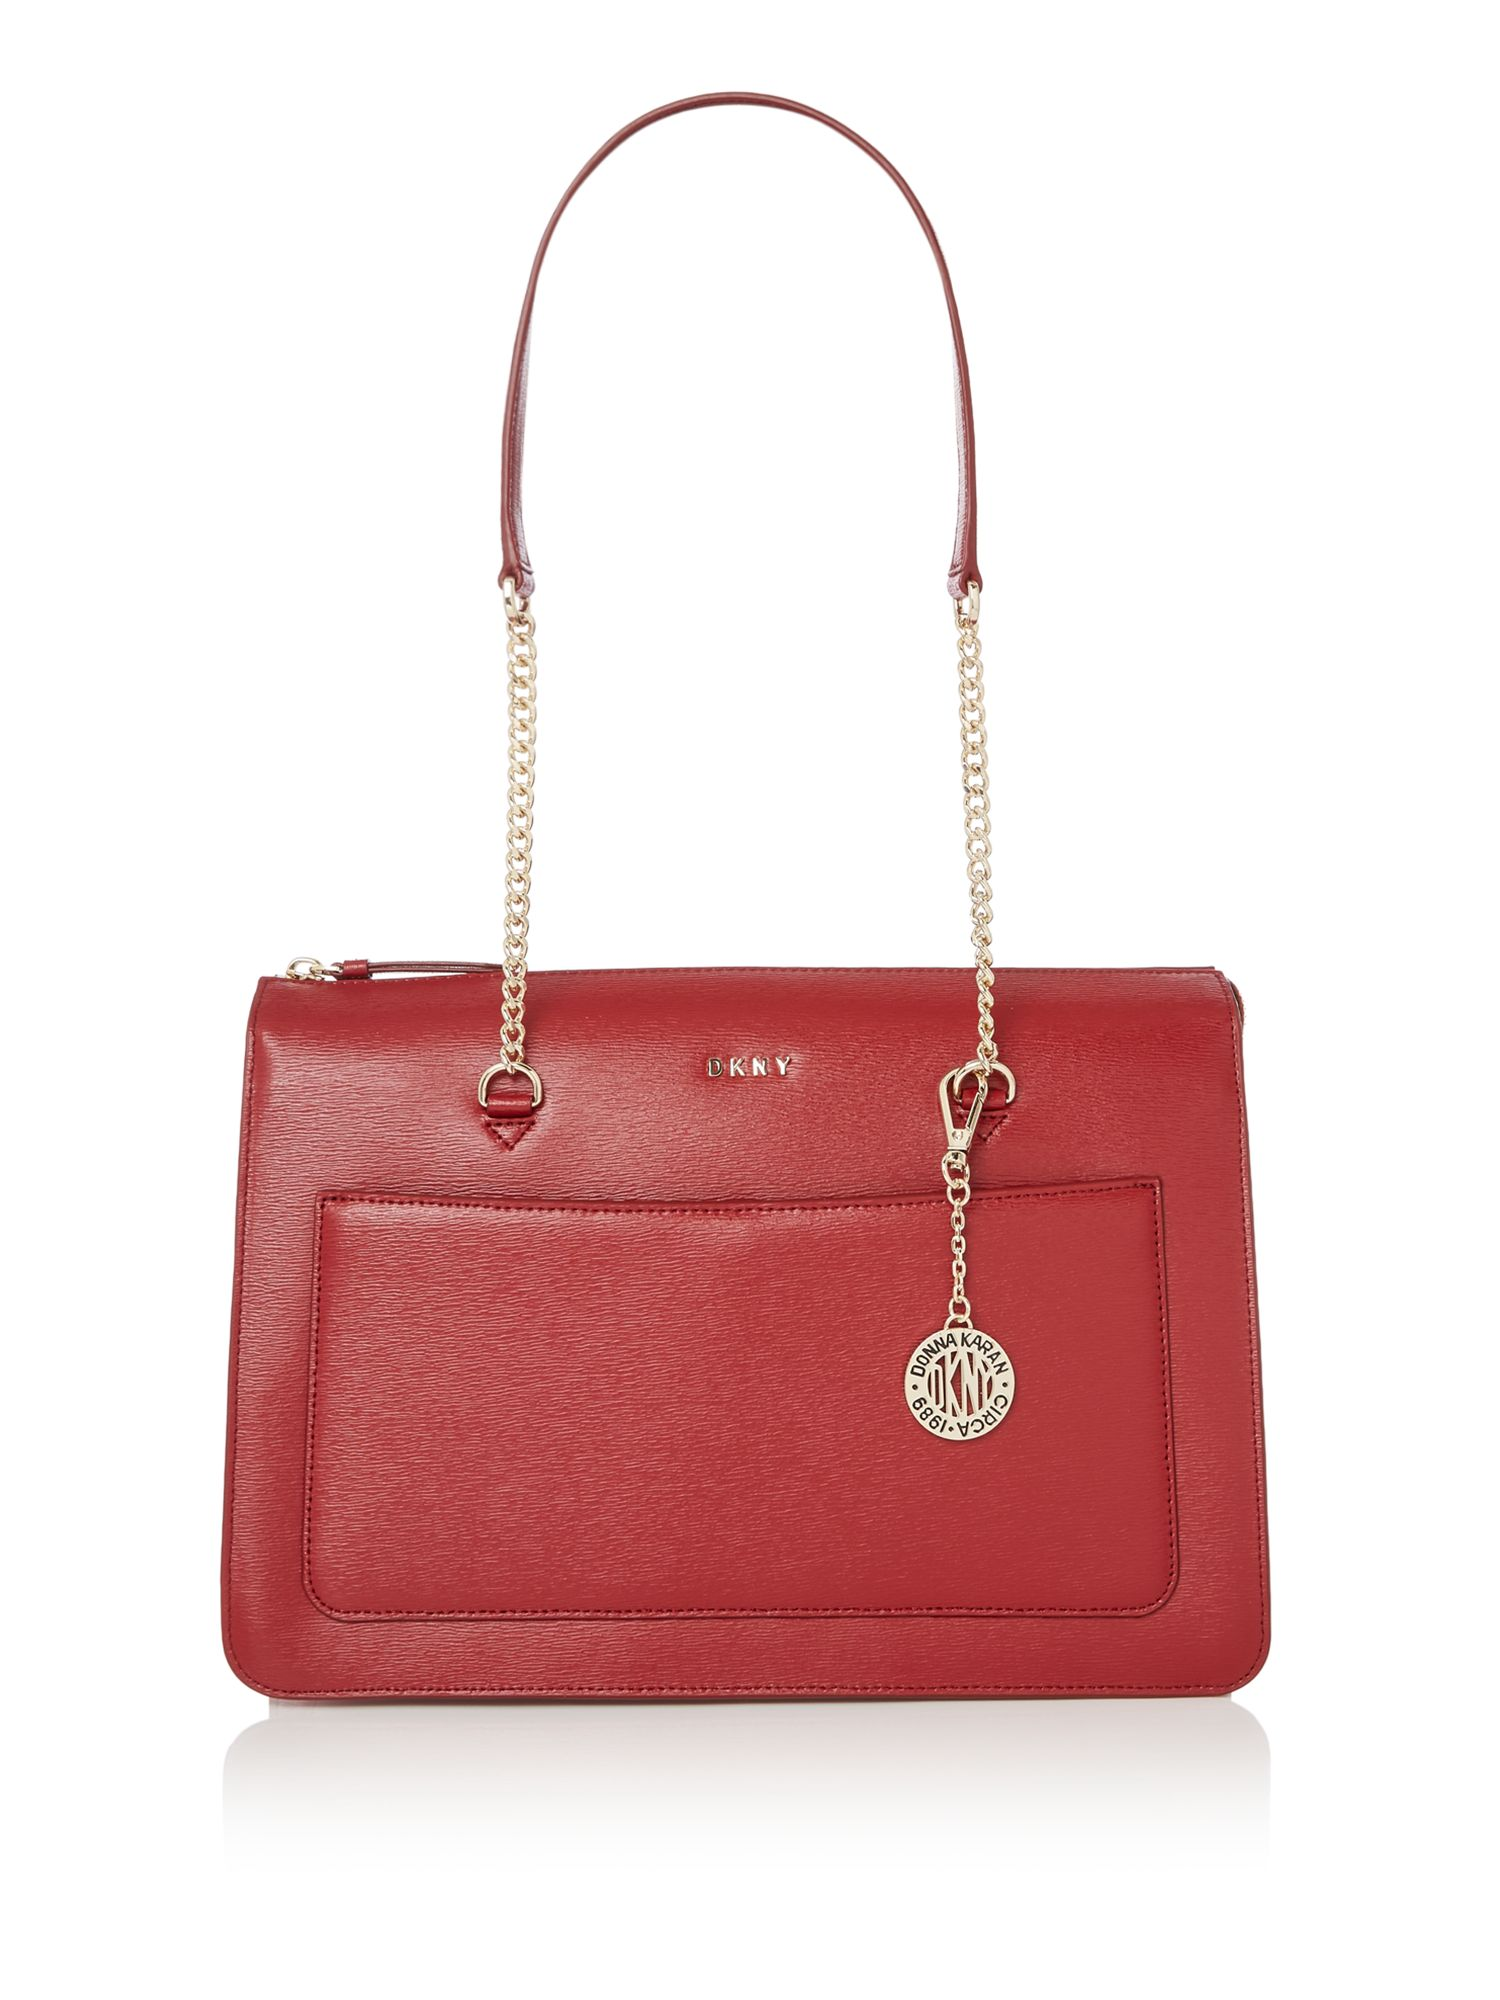 dkny sutton chain top zip tote